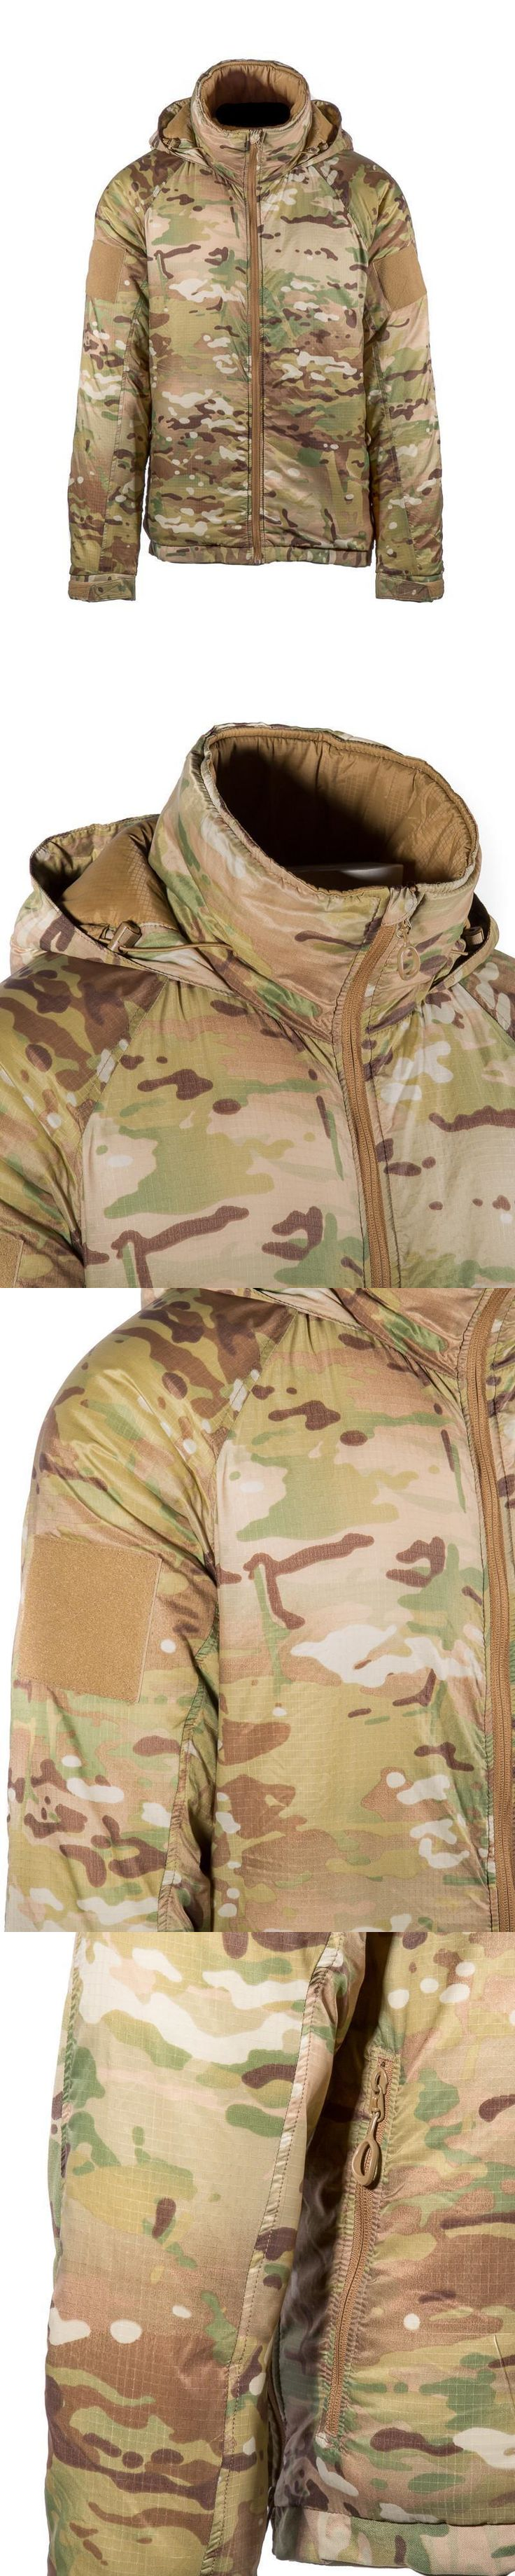 Tactical Clothing 177896: Beyond A7 Extreme Cold Weather Jacket Multicam Usa Made -> BUY IT NOW ONLY: $384 on eBay!